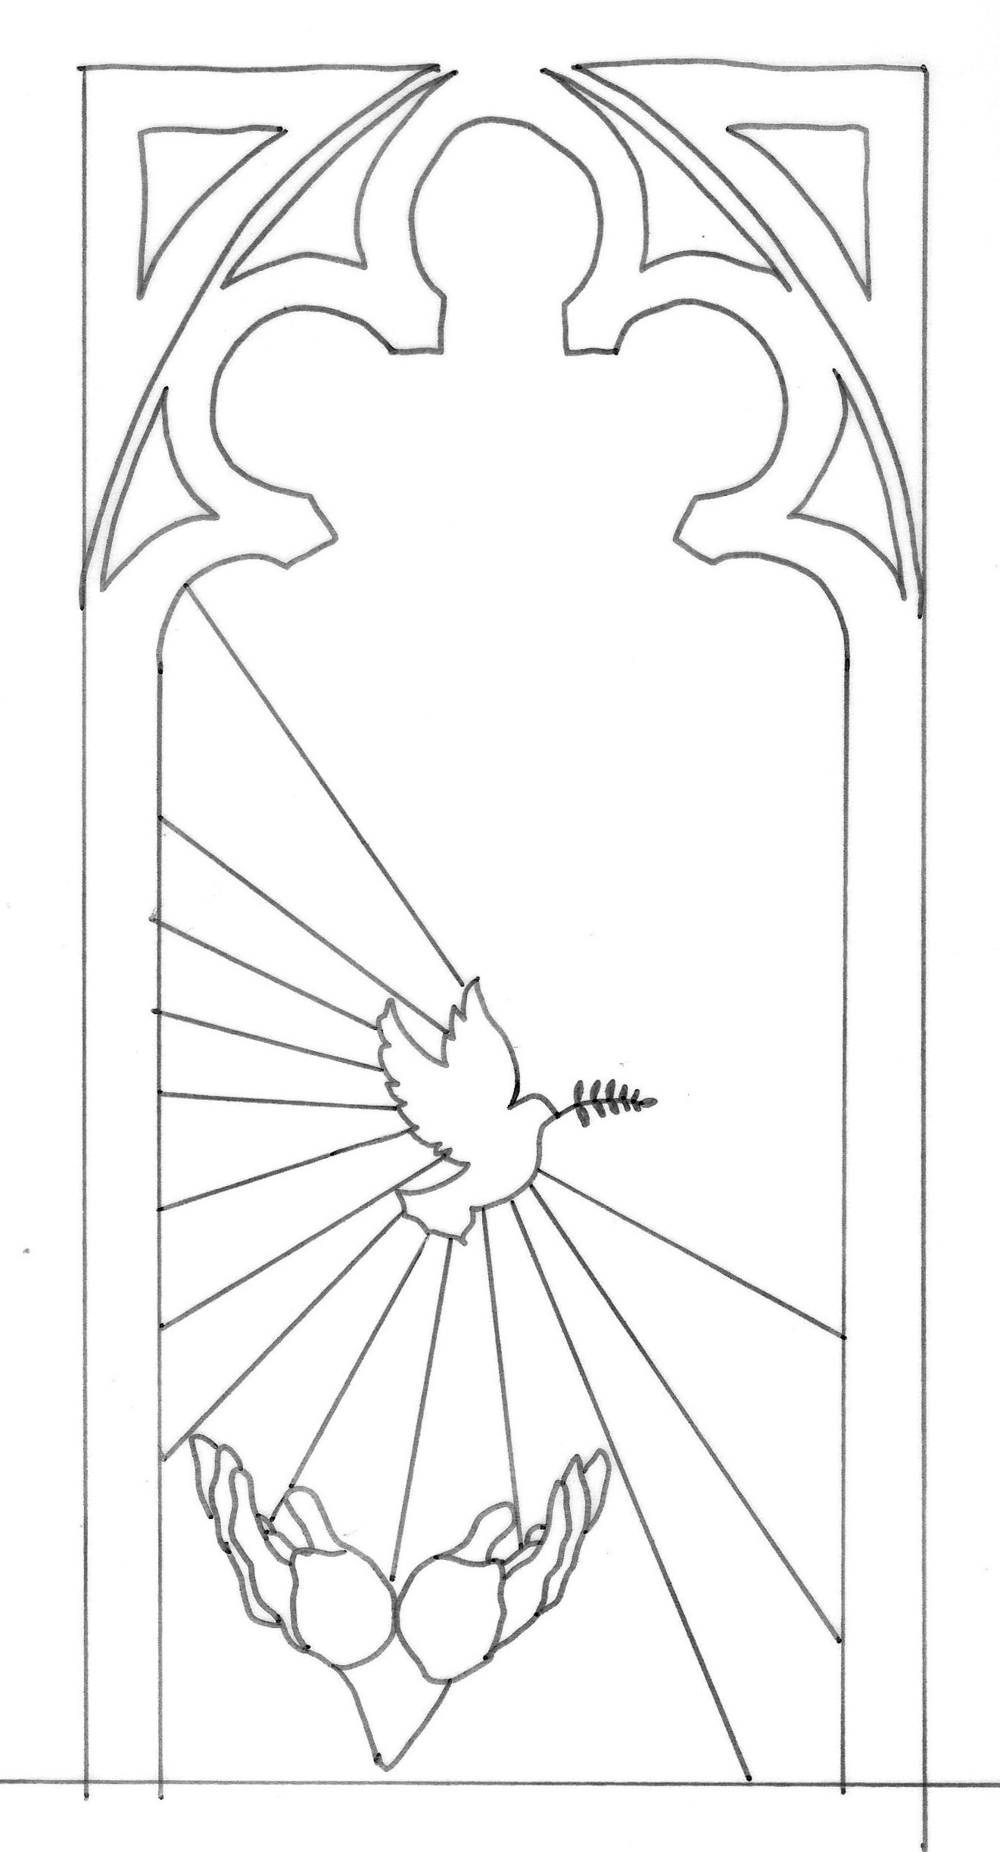 Church_Window_design_bespoke_etchedglass7.jpeg